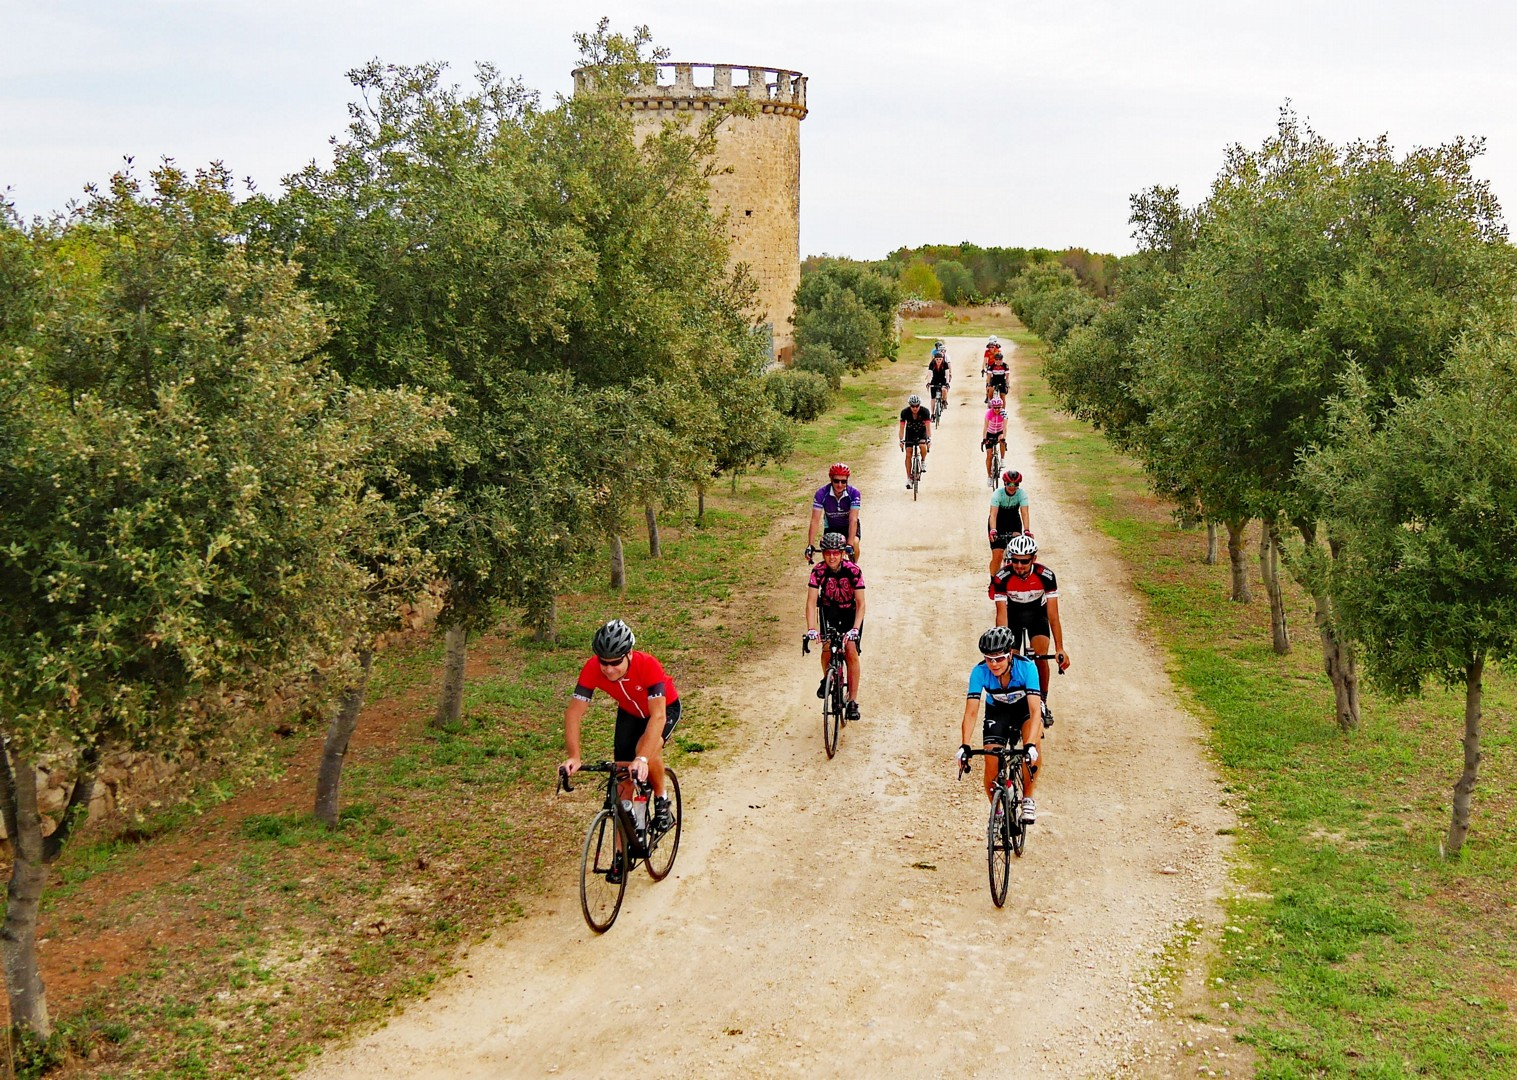 north-to-south-guided-road-cycling-holiday-grand-traverse.jpg - Italy - Grand Traverse - North to South (17 days) - Guided Road Cycling Holiday - Road Cycling